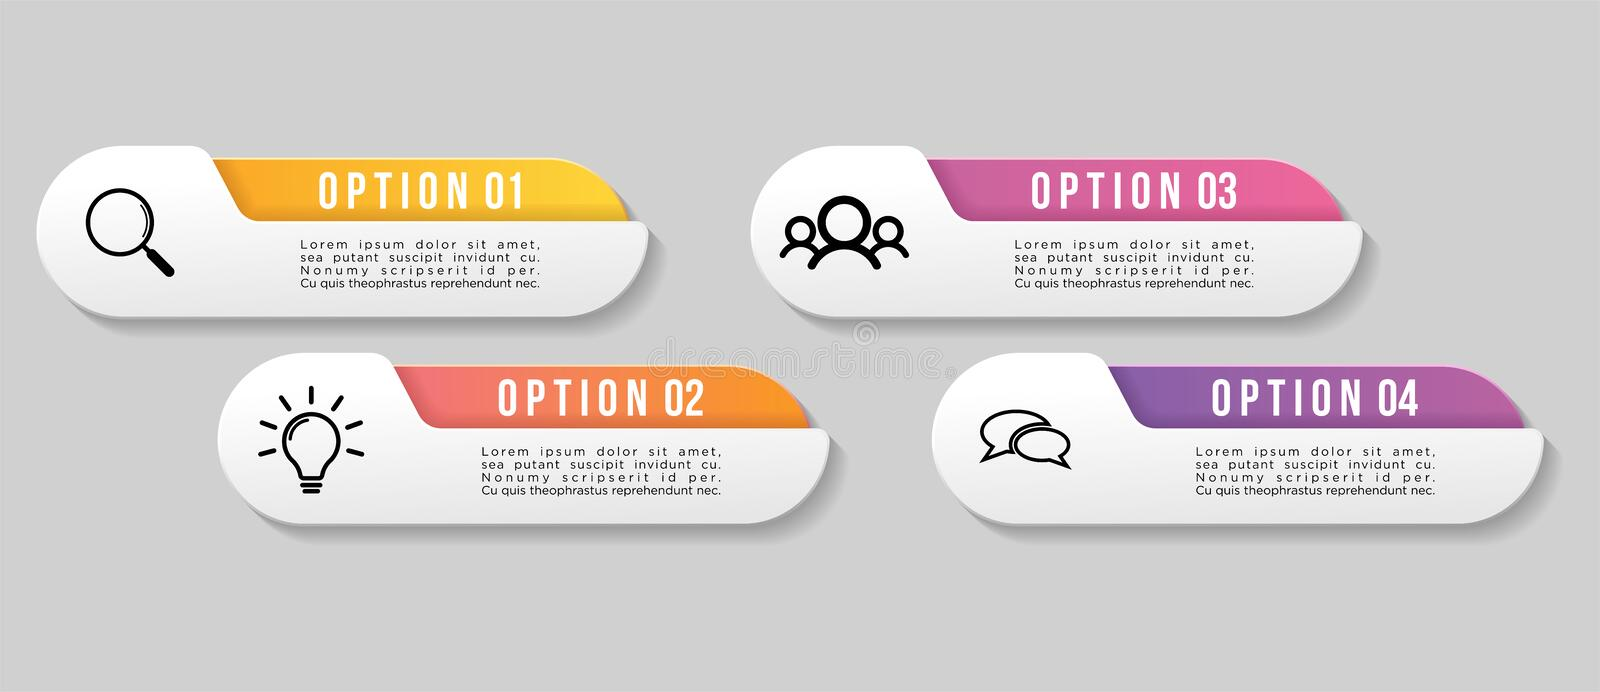 Vector Infographics Elements Template Design. Business Data Visualization Timeline with Marketing Icons most useful can be used. For presentation, diagrams royalty free illustration